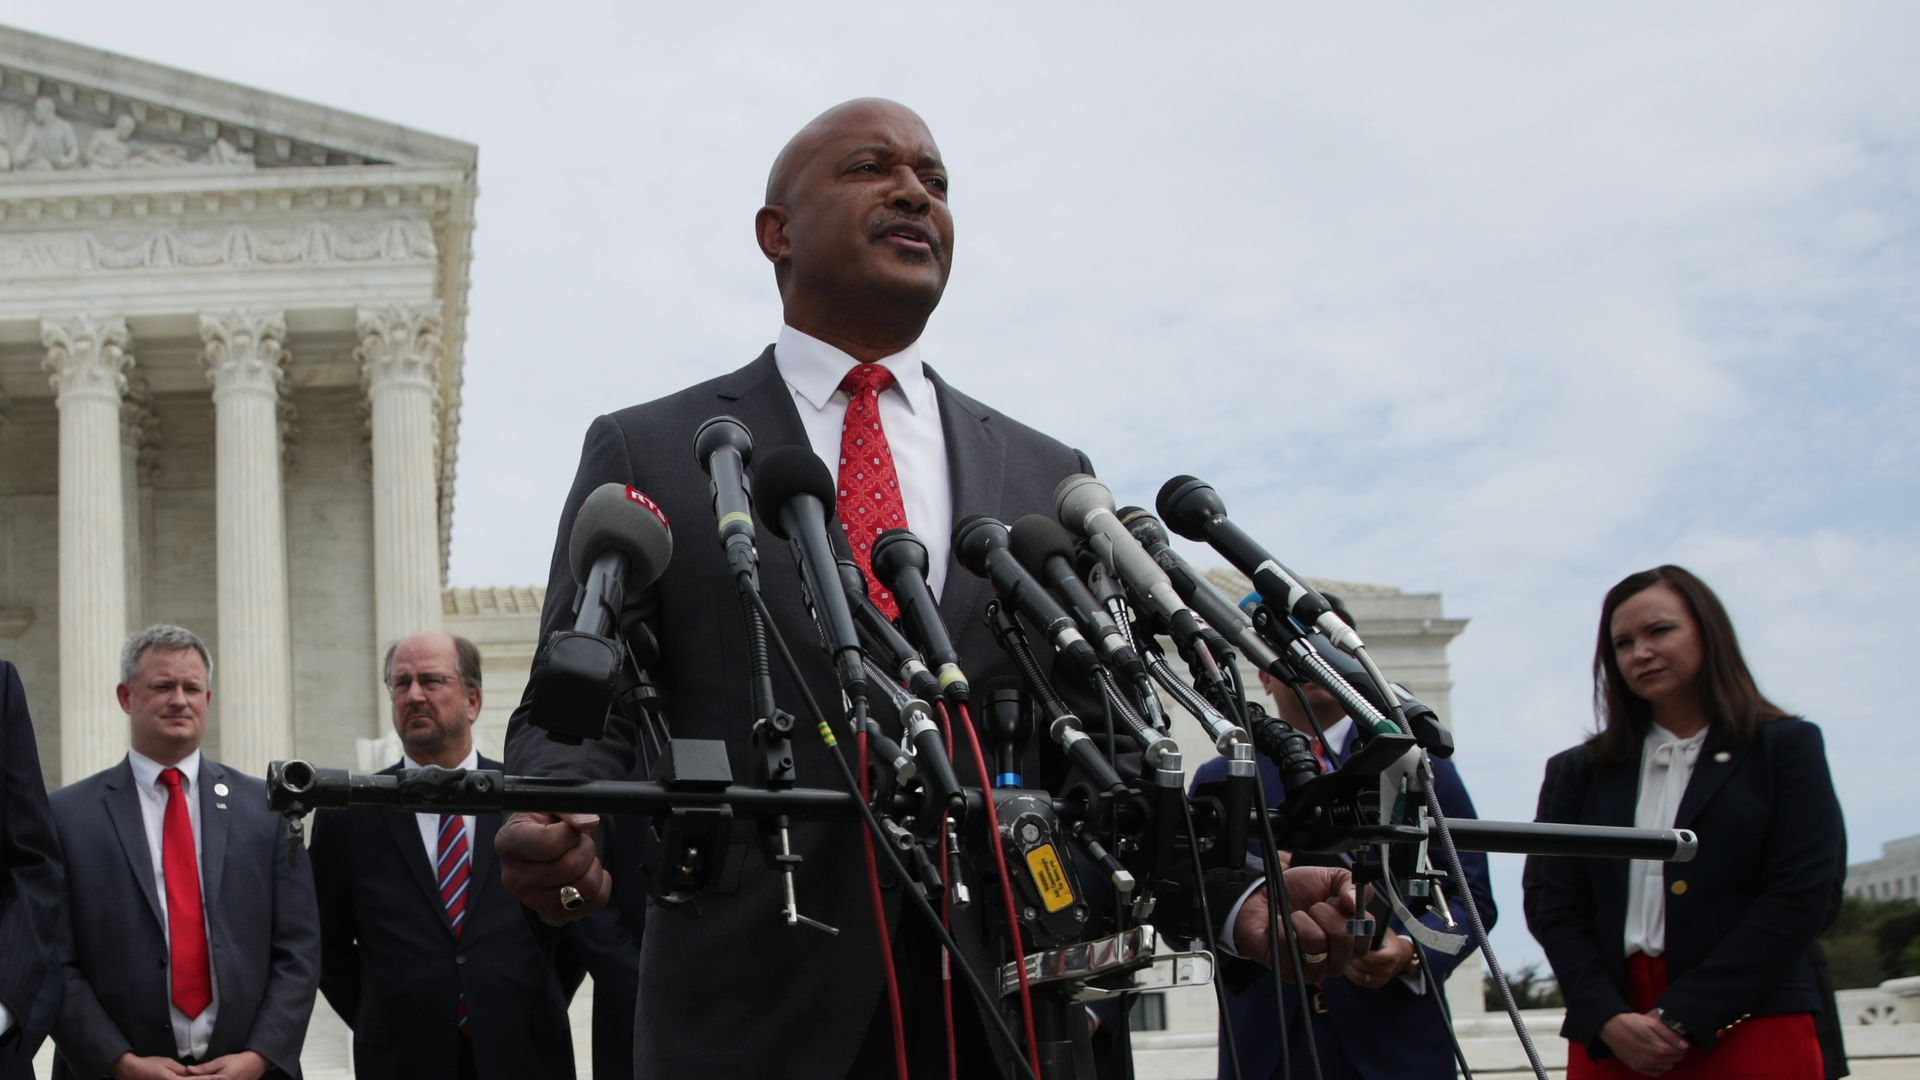 Indiana Attorney General Curtis Hill speaks as Washington, DC Attorney General Karl Racine at a news conference